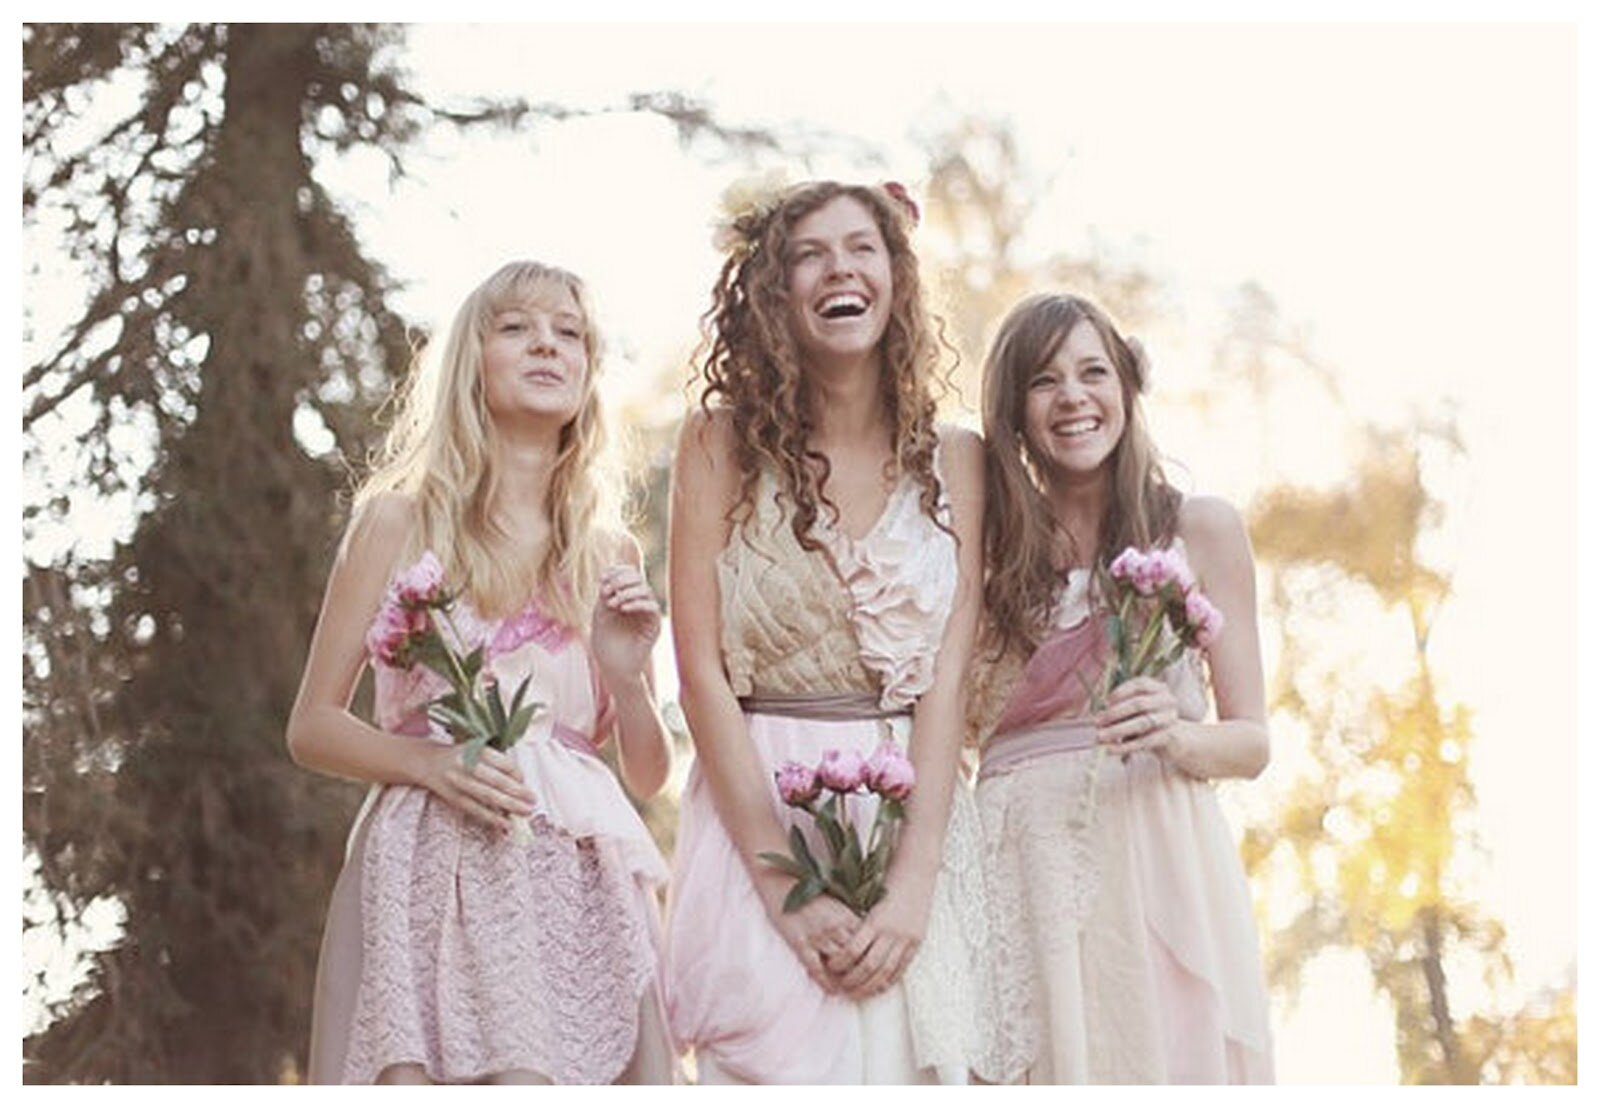 Vintage wedding bridesmaid dresses pictures ideas guide to vintage wedding bridesmaid dresses photo 2 ombrellifo Images